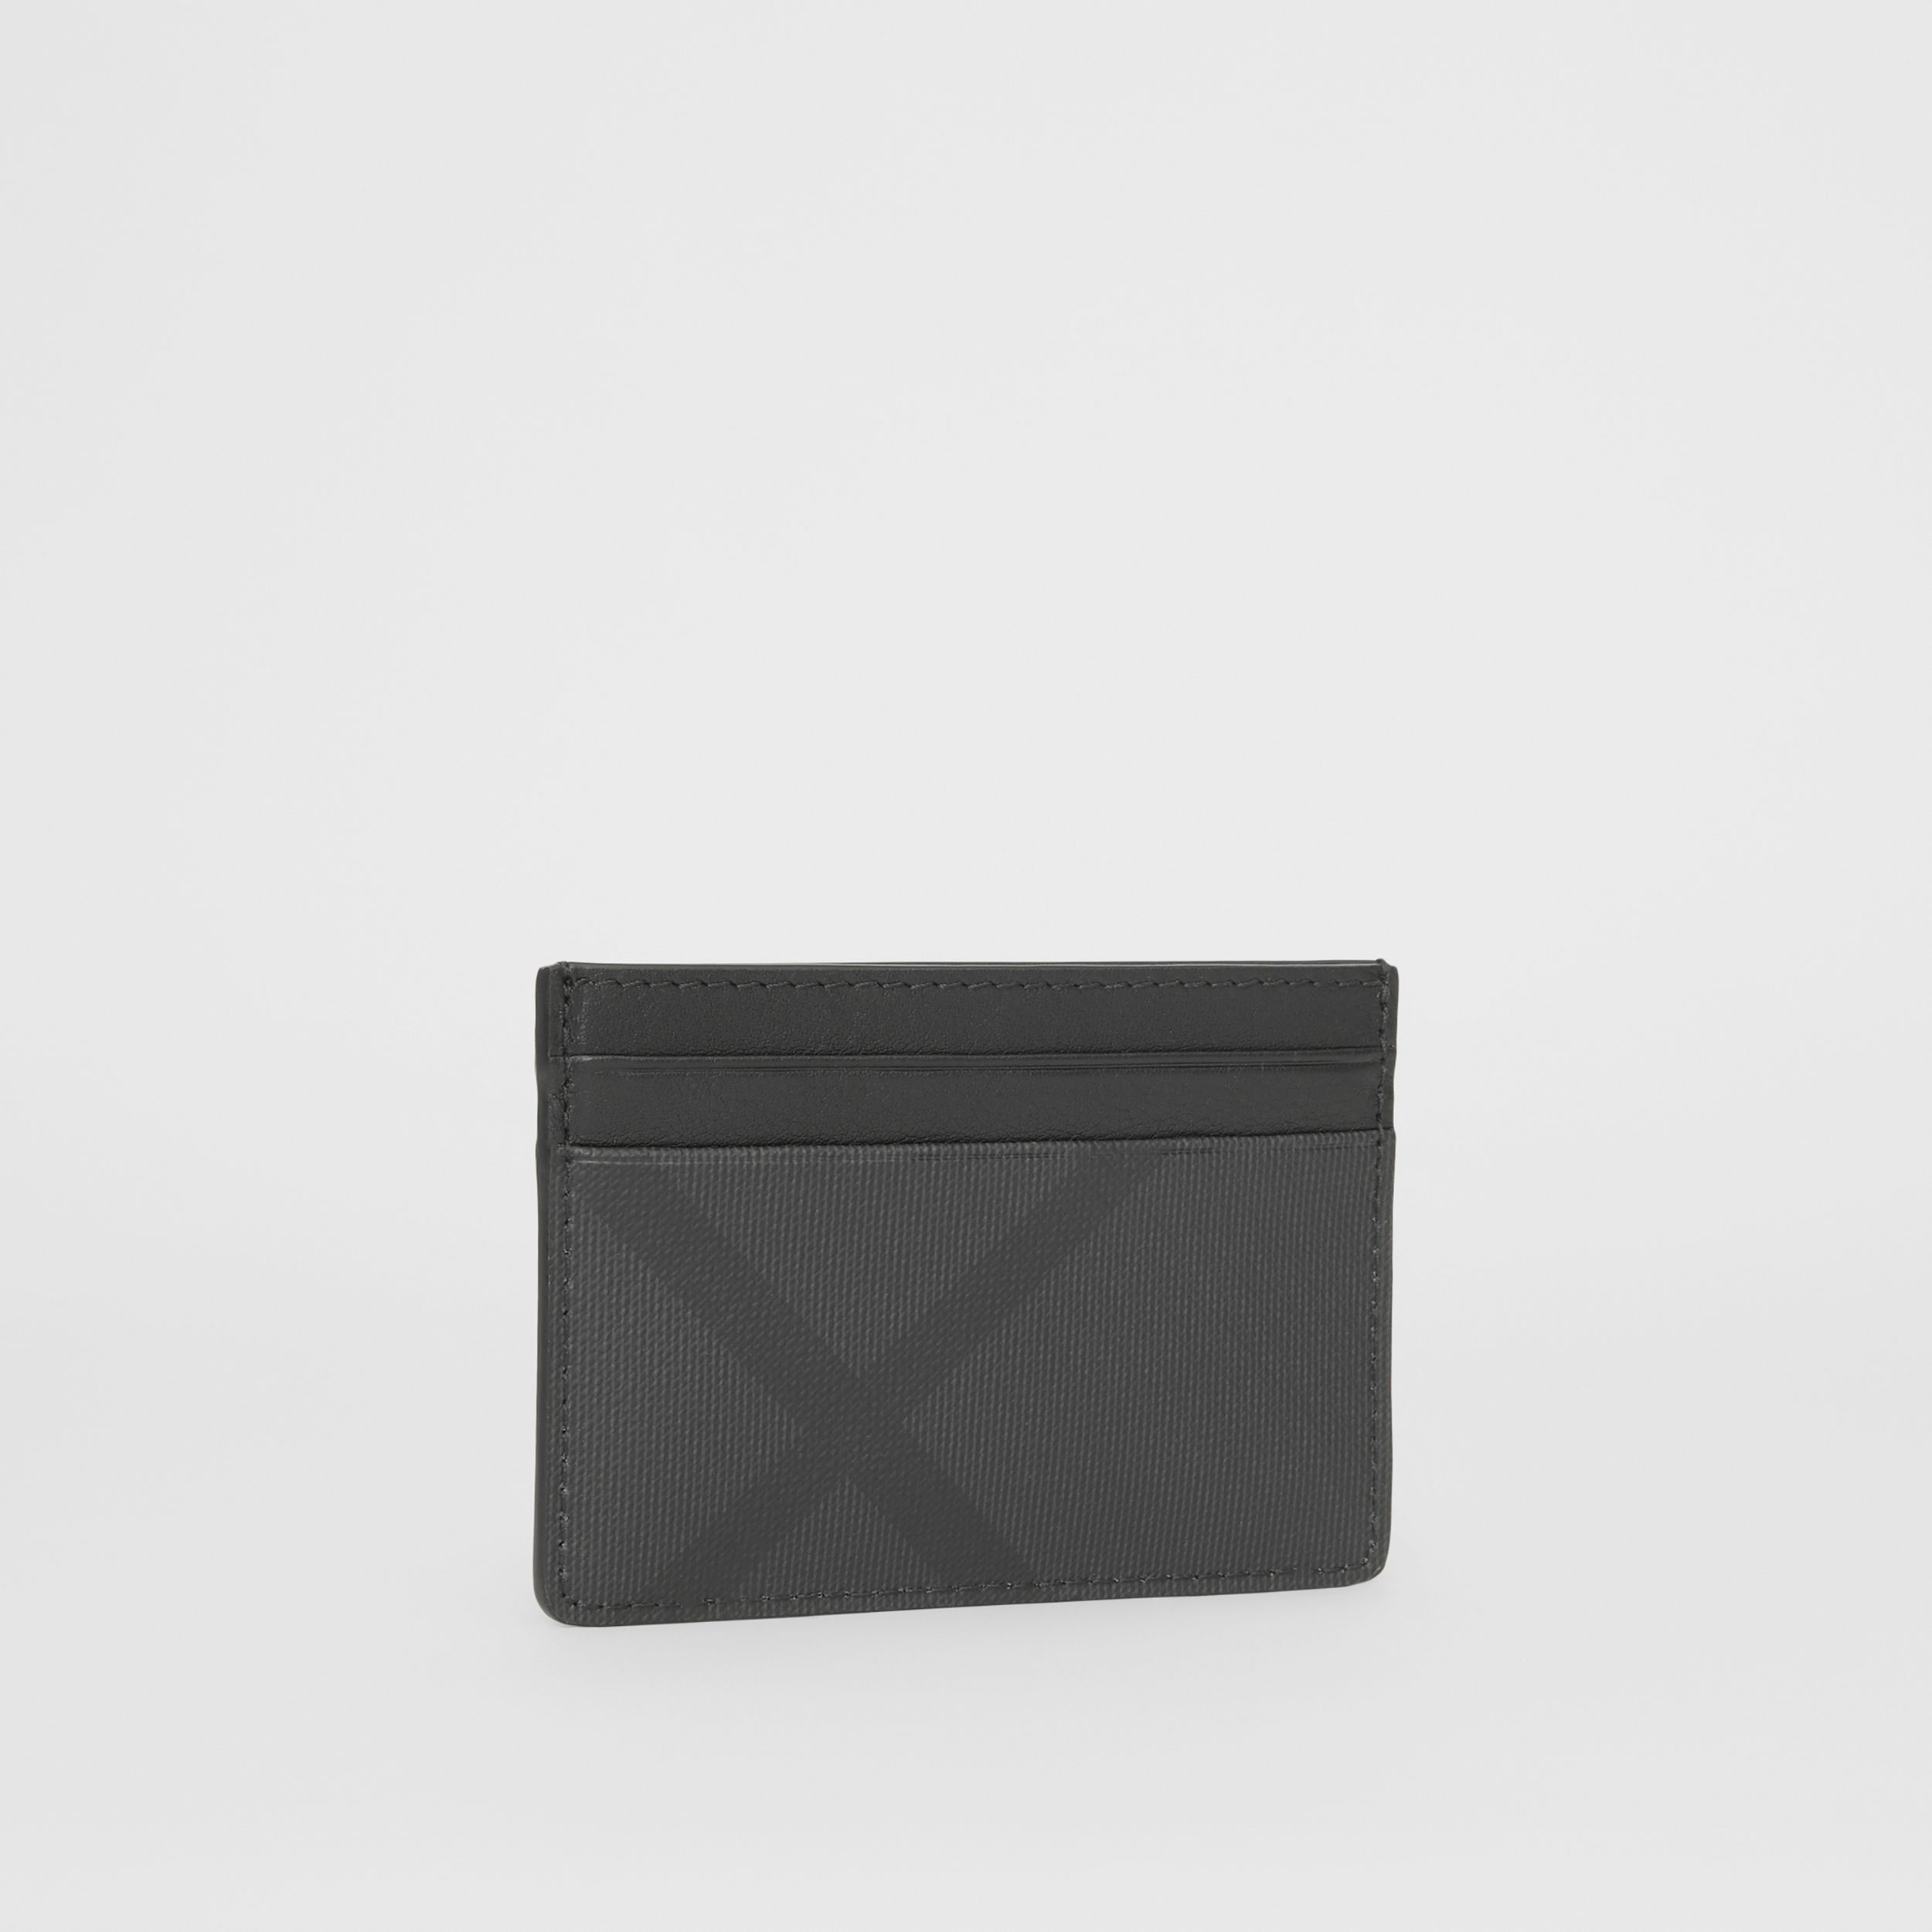 London Check and Leather Card Case in Dark Charcoal - Men | Burberry - 4